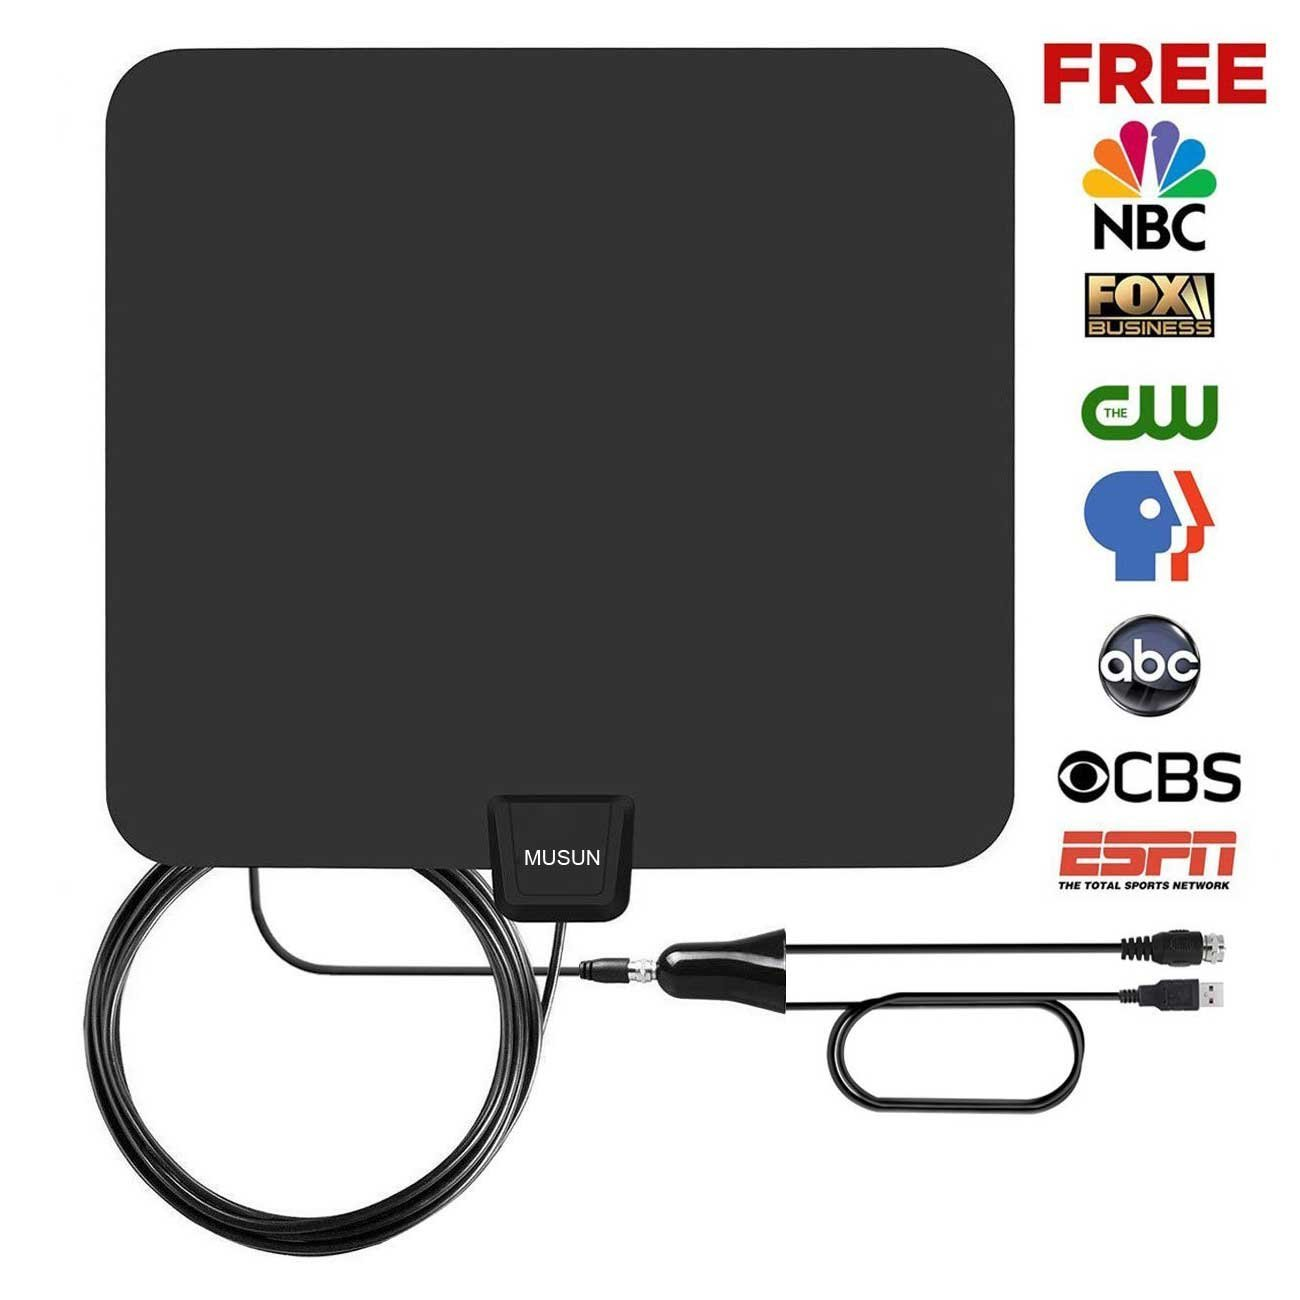 TV Antenna,Indoor Amplified HDTV Antenna 50+ Mile Range with Detachable Amplifier Signal Booster, USB Power Supply and 13.5FT High Performance Coax Cable - Upgraded Version Better Reception